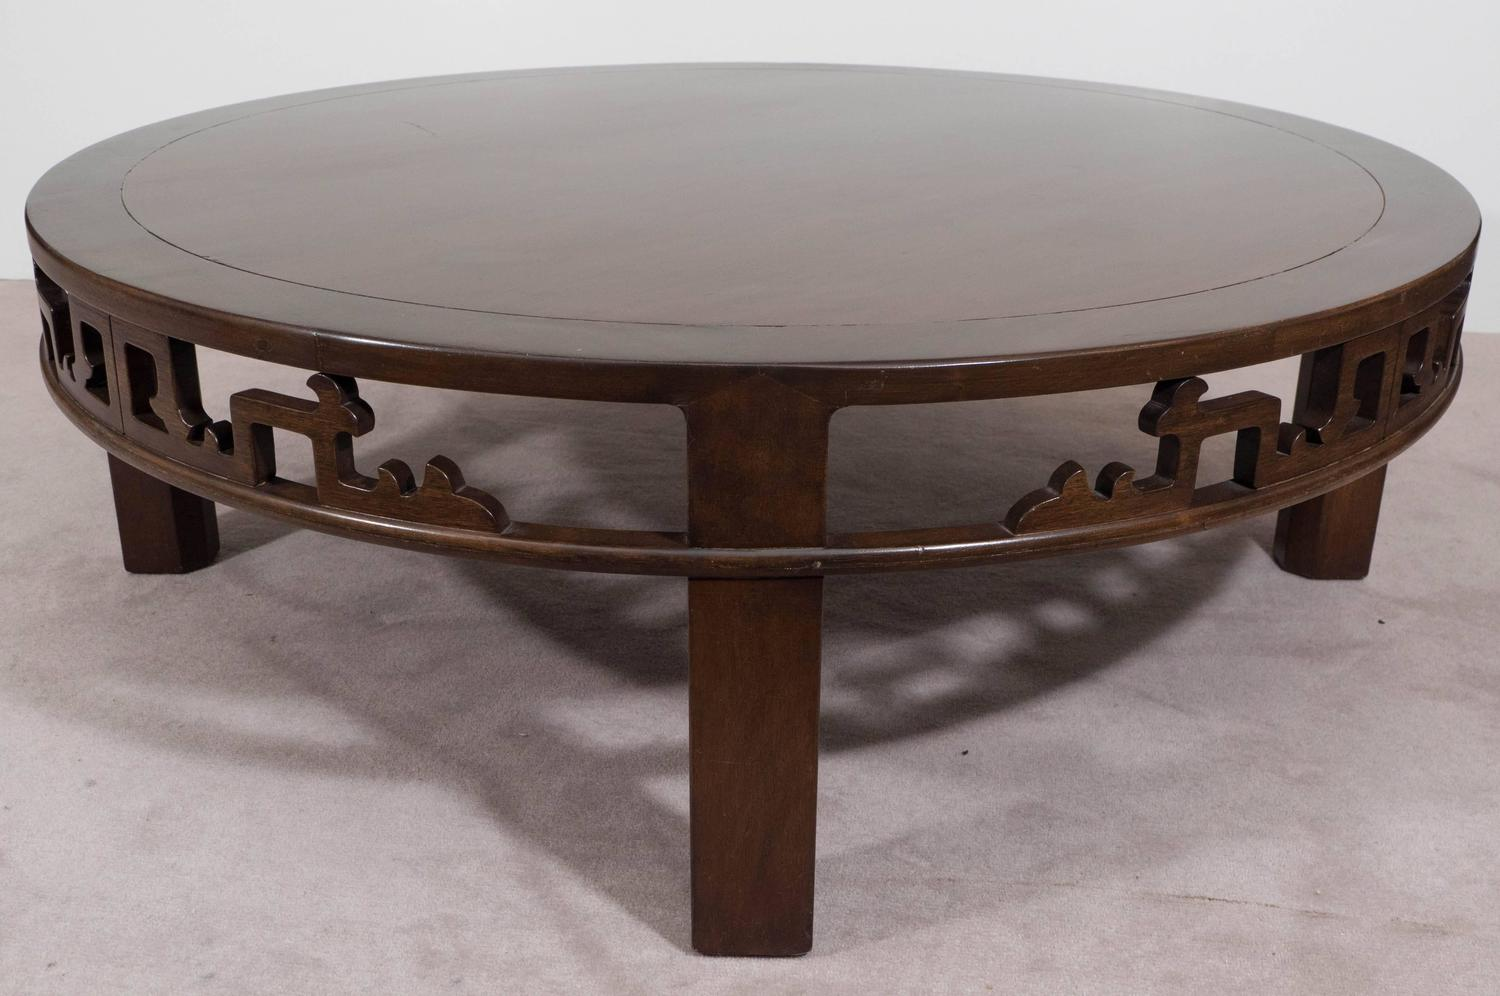 Baker Furniture Asian Inspired Round Coffee Table For Sale At 1stdibs